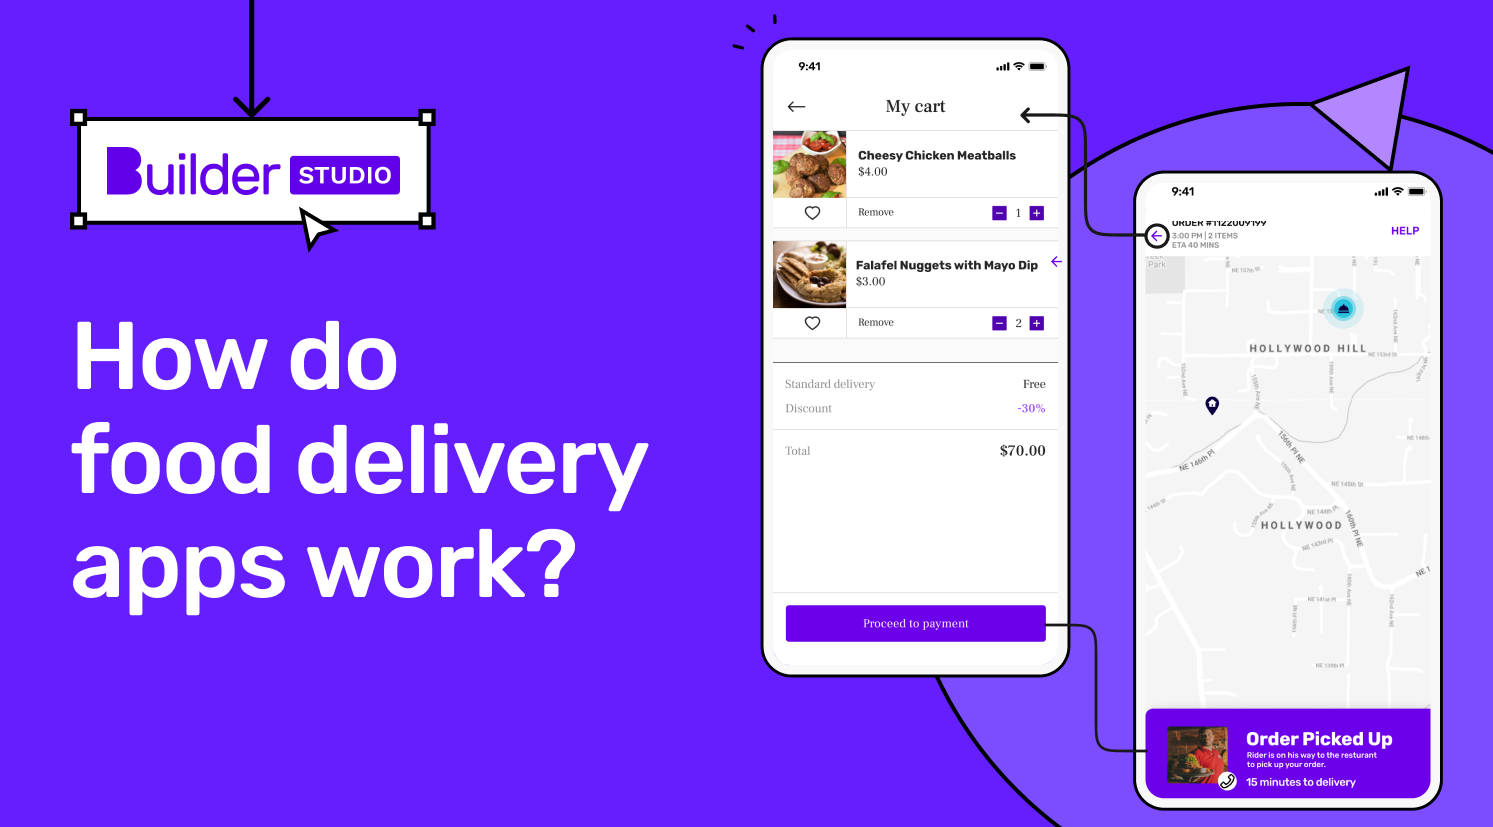 How do food delivery apps work?